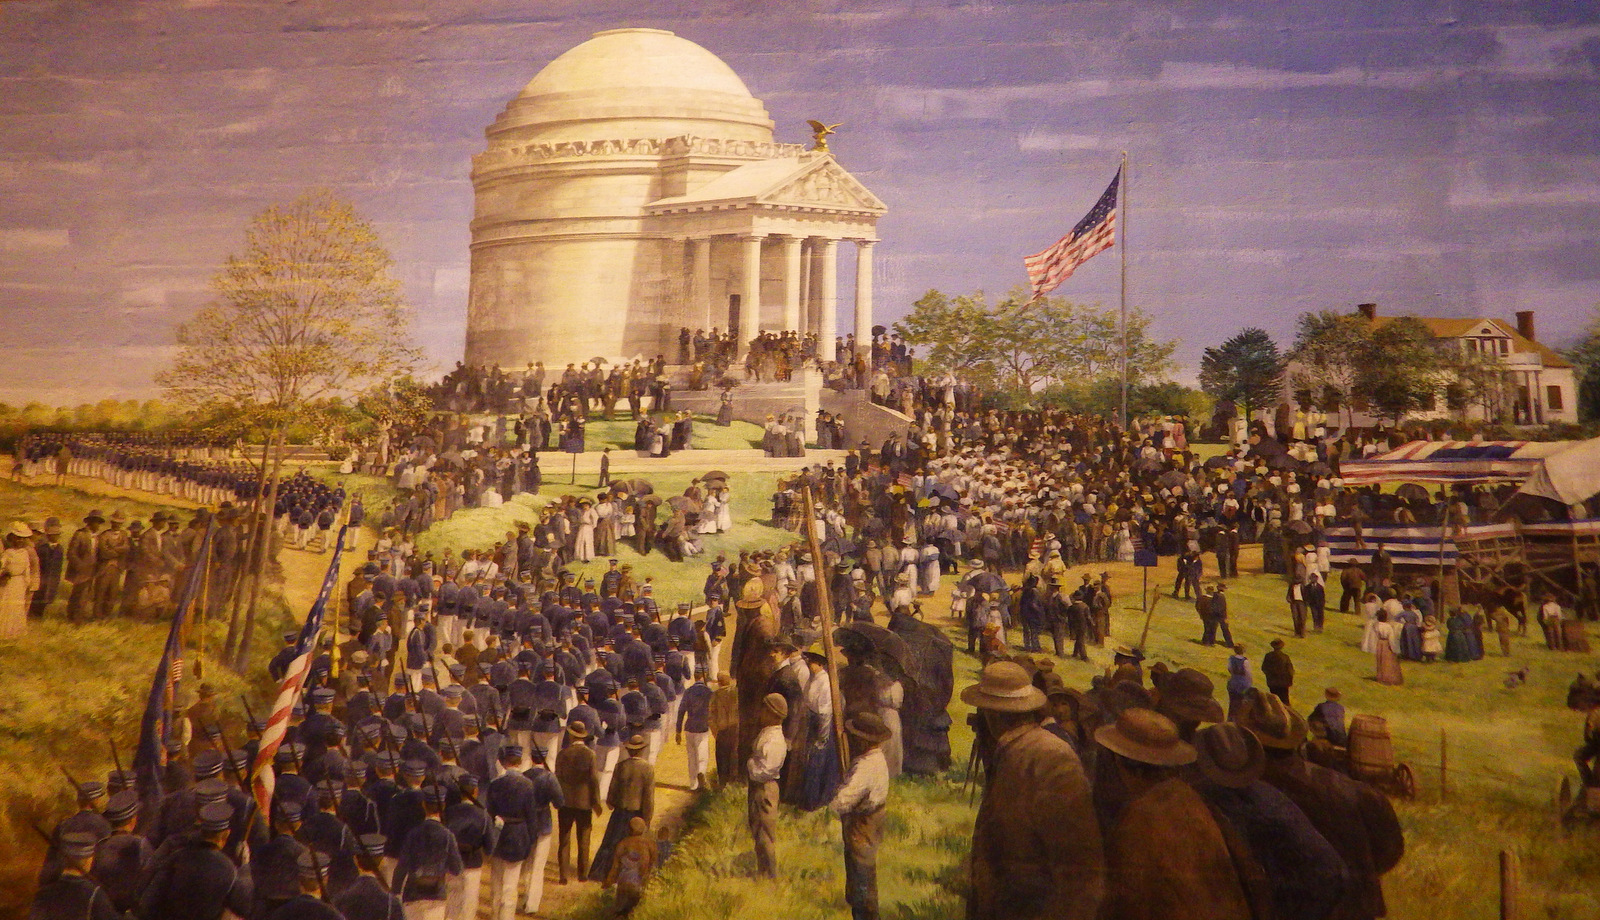 Mural of Illinois Memorial dedication day